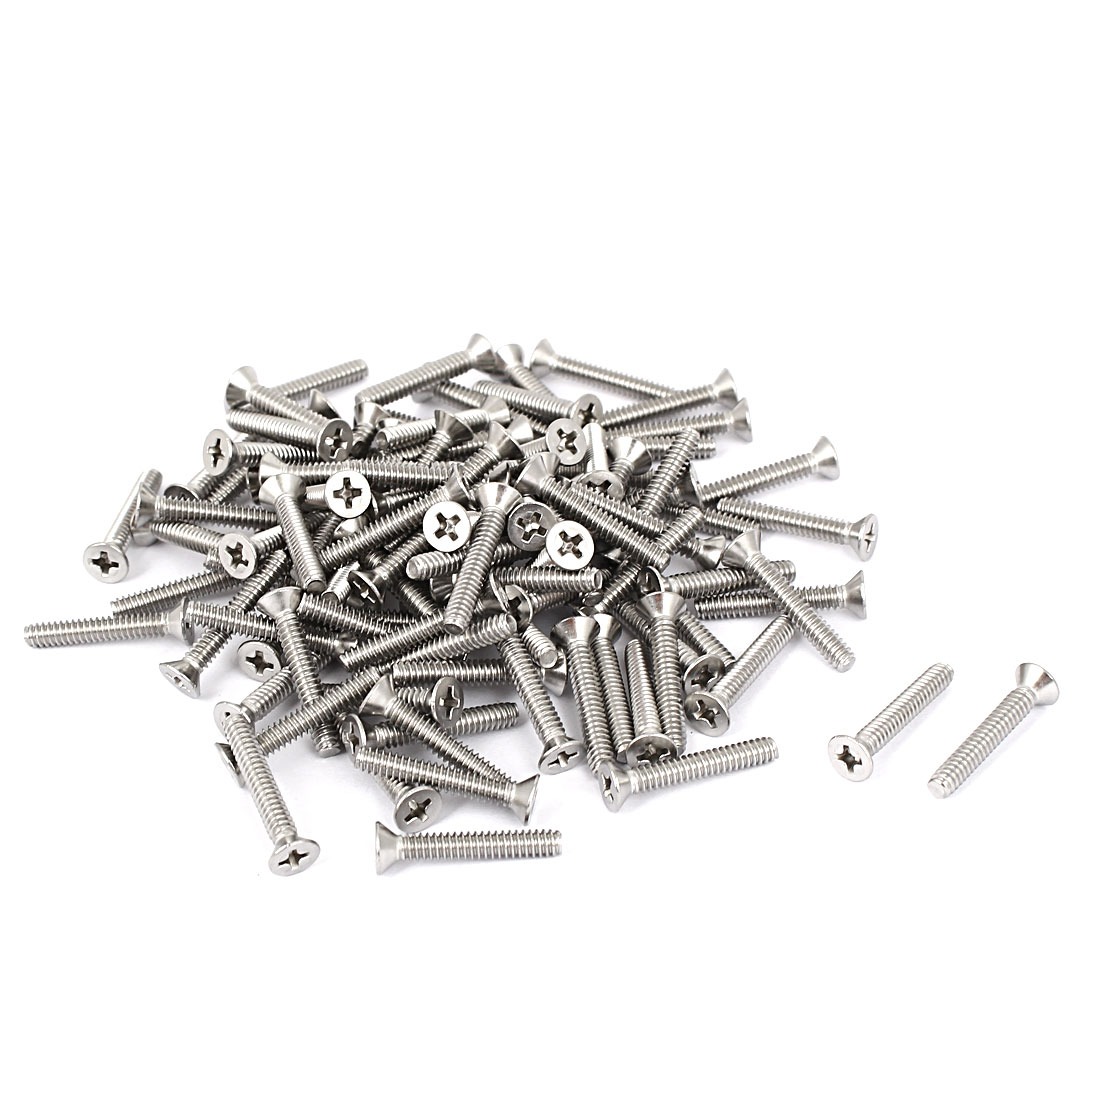 "6#-32x7/8"" 304 Stainless Steel Phillips Flat Countersunk Head Screws 100pcs"